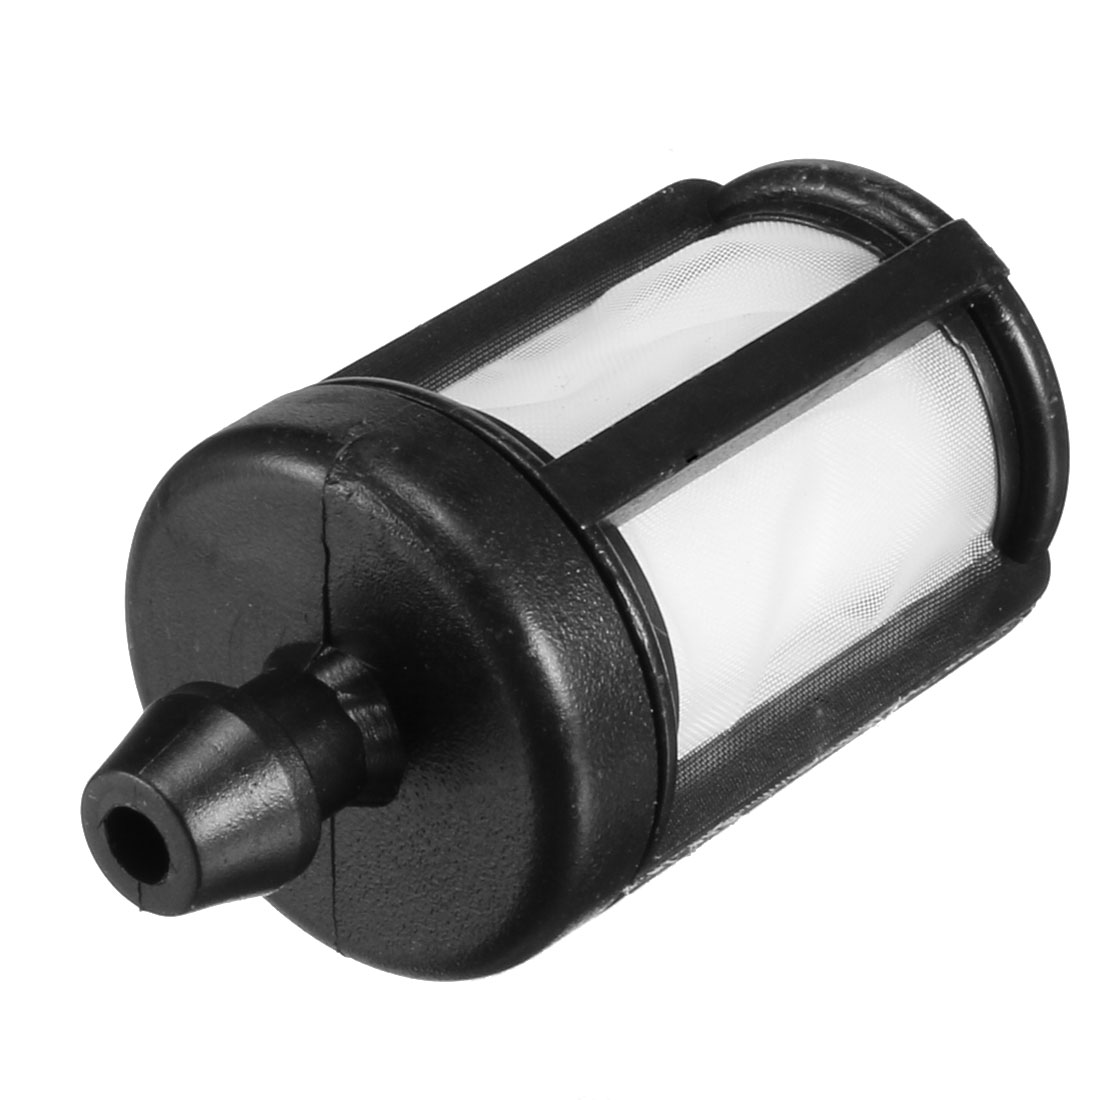 fuel filter replacement for ms381 weedeater chainsaw trimmer edger Weedeater Featherlite Weed Eater Parts Diagram fuel filter replacement for ms381 weedeater chainsaw trimmer edger blower walmart com